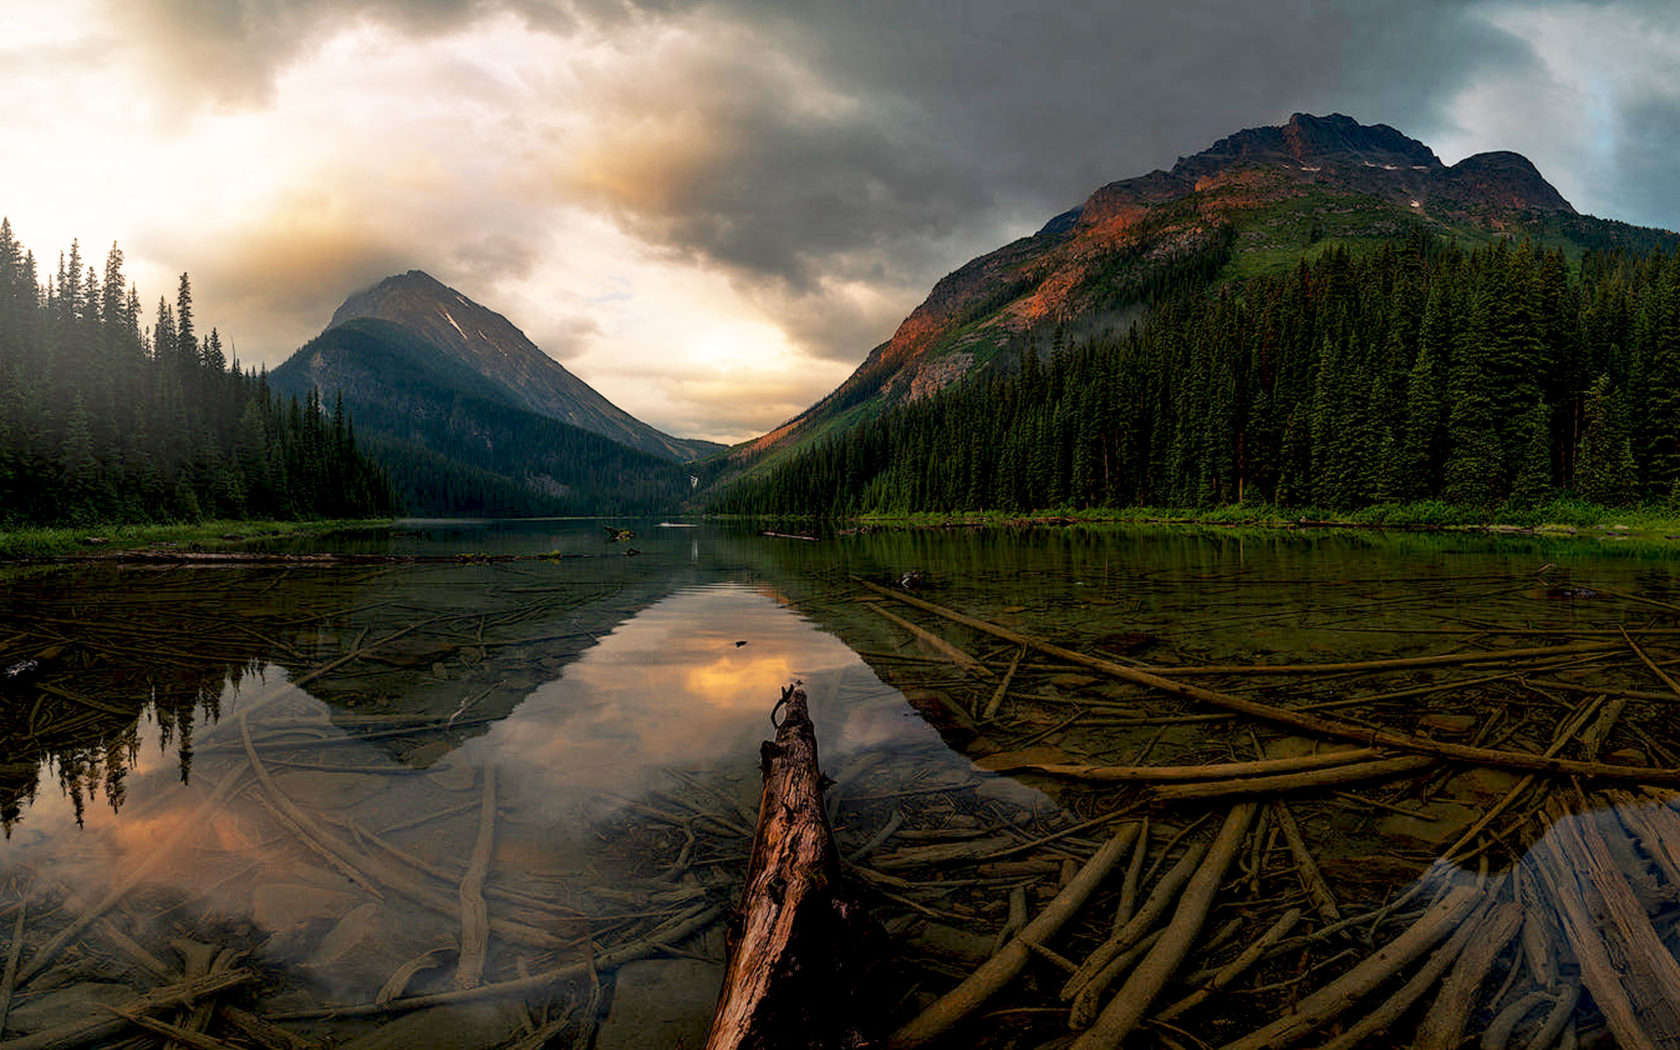 sunrise jasper mountain lake in the canadian rockies 4k ultra hd wallpapers for high resolution puter and lapto